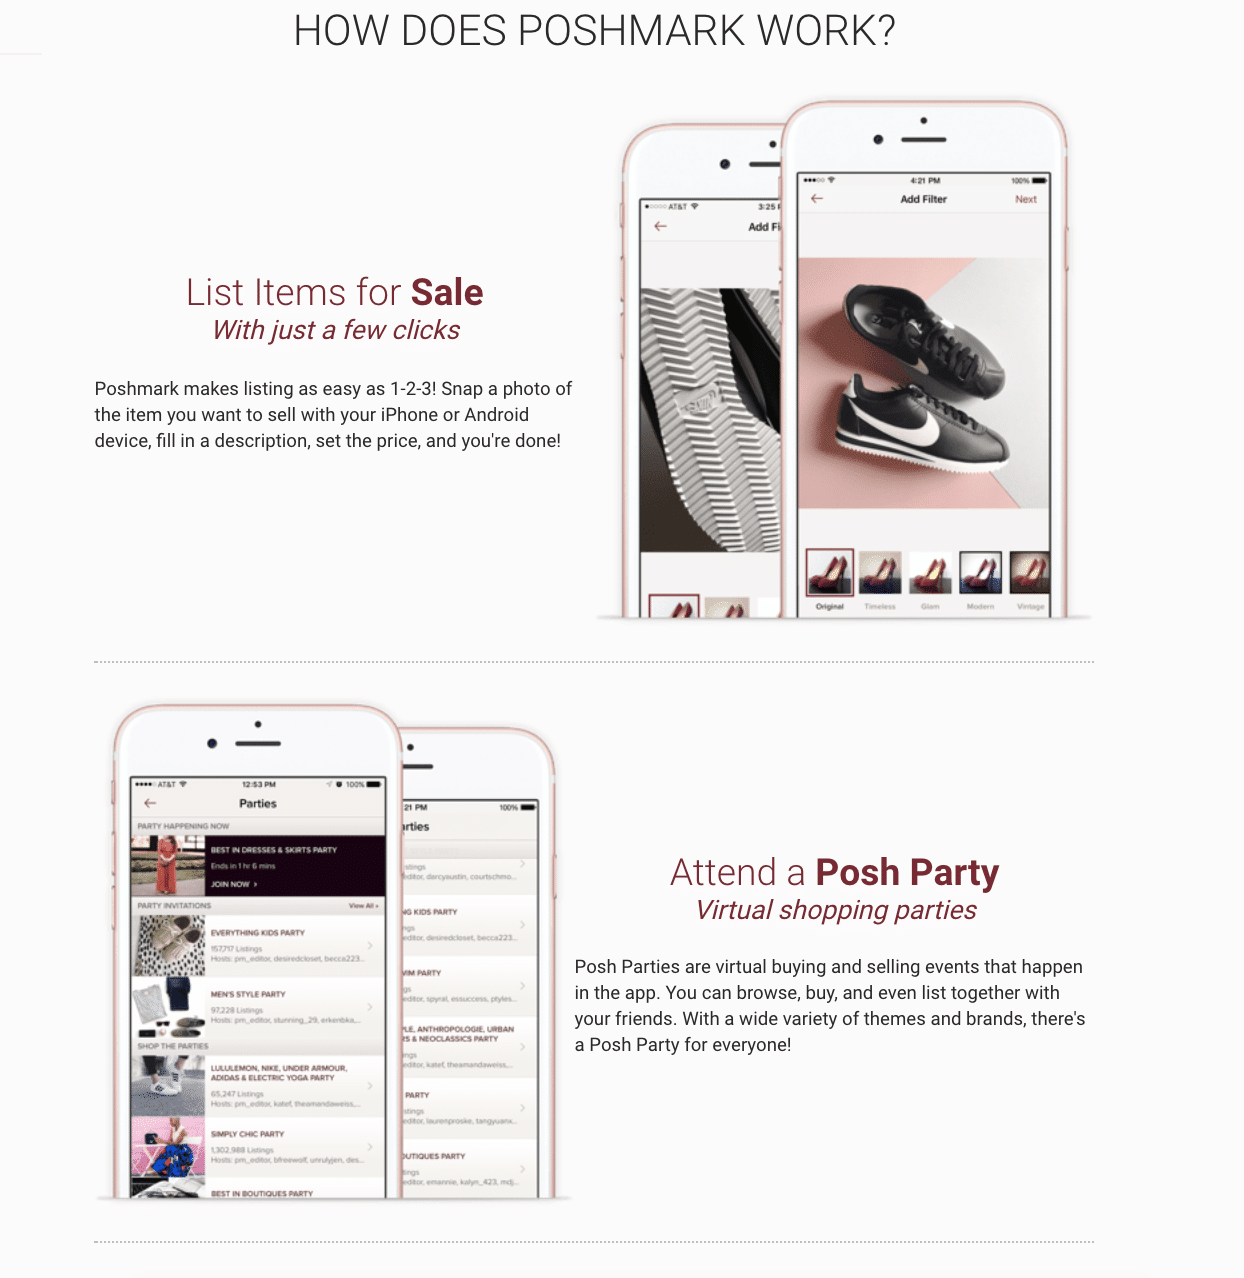 How to sell on Poshmark: the webpage explaining how the service works